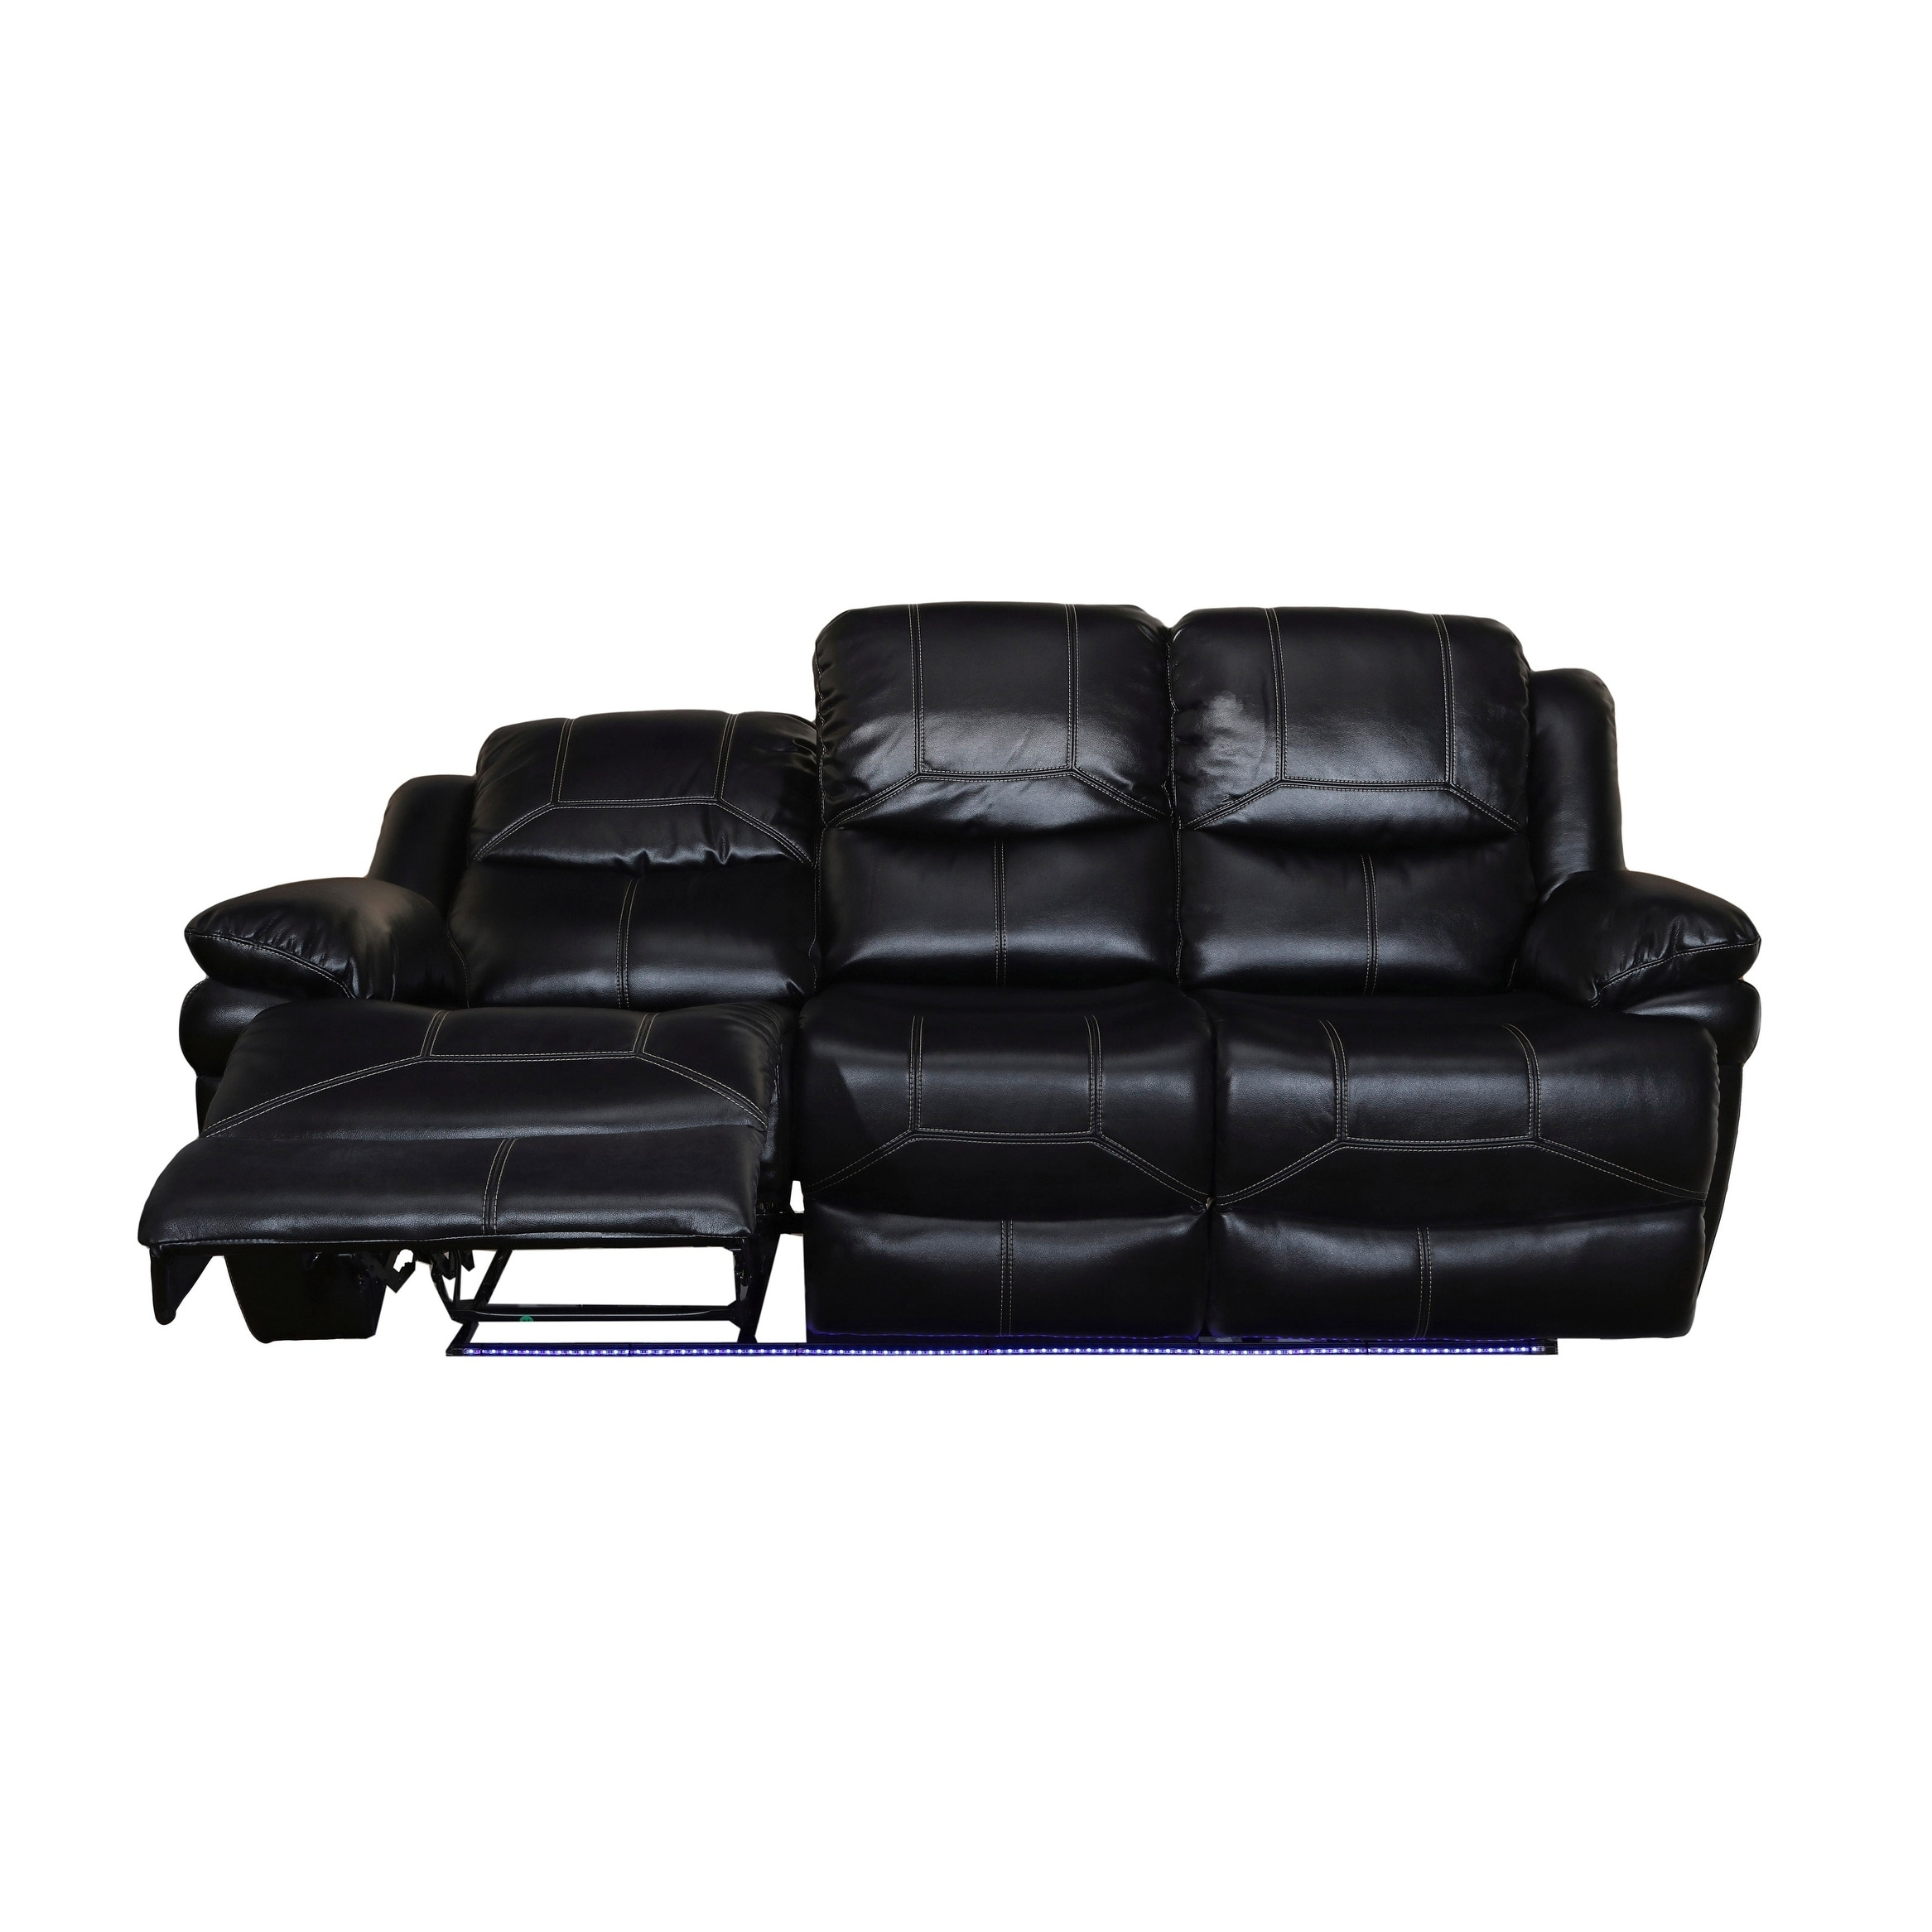 motion recliner power shipping reclining overstock sofa home premier dual flynn today product garden free black